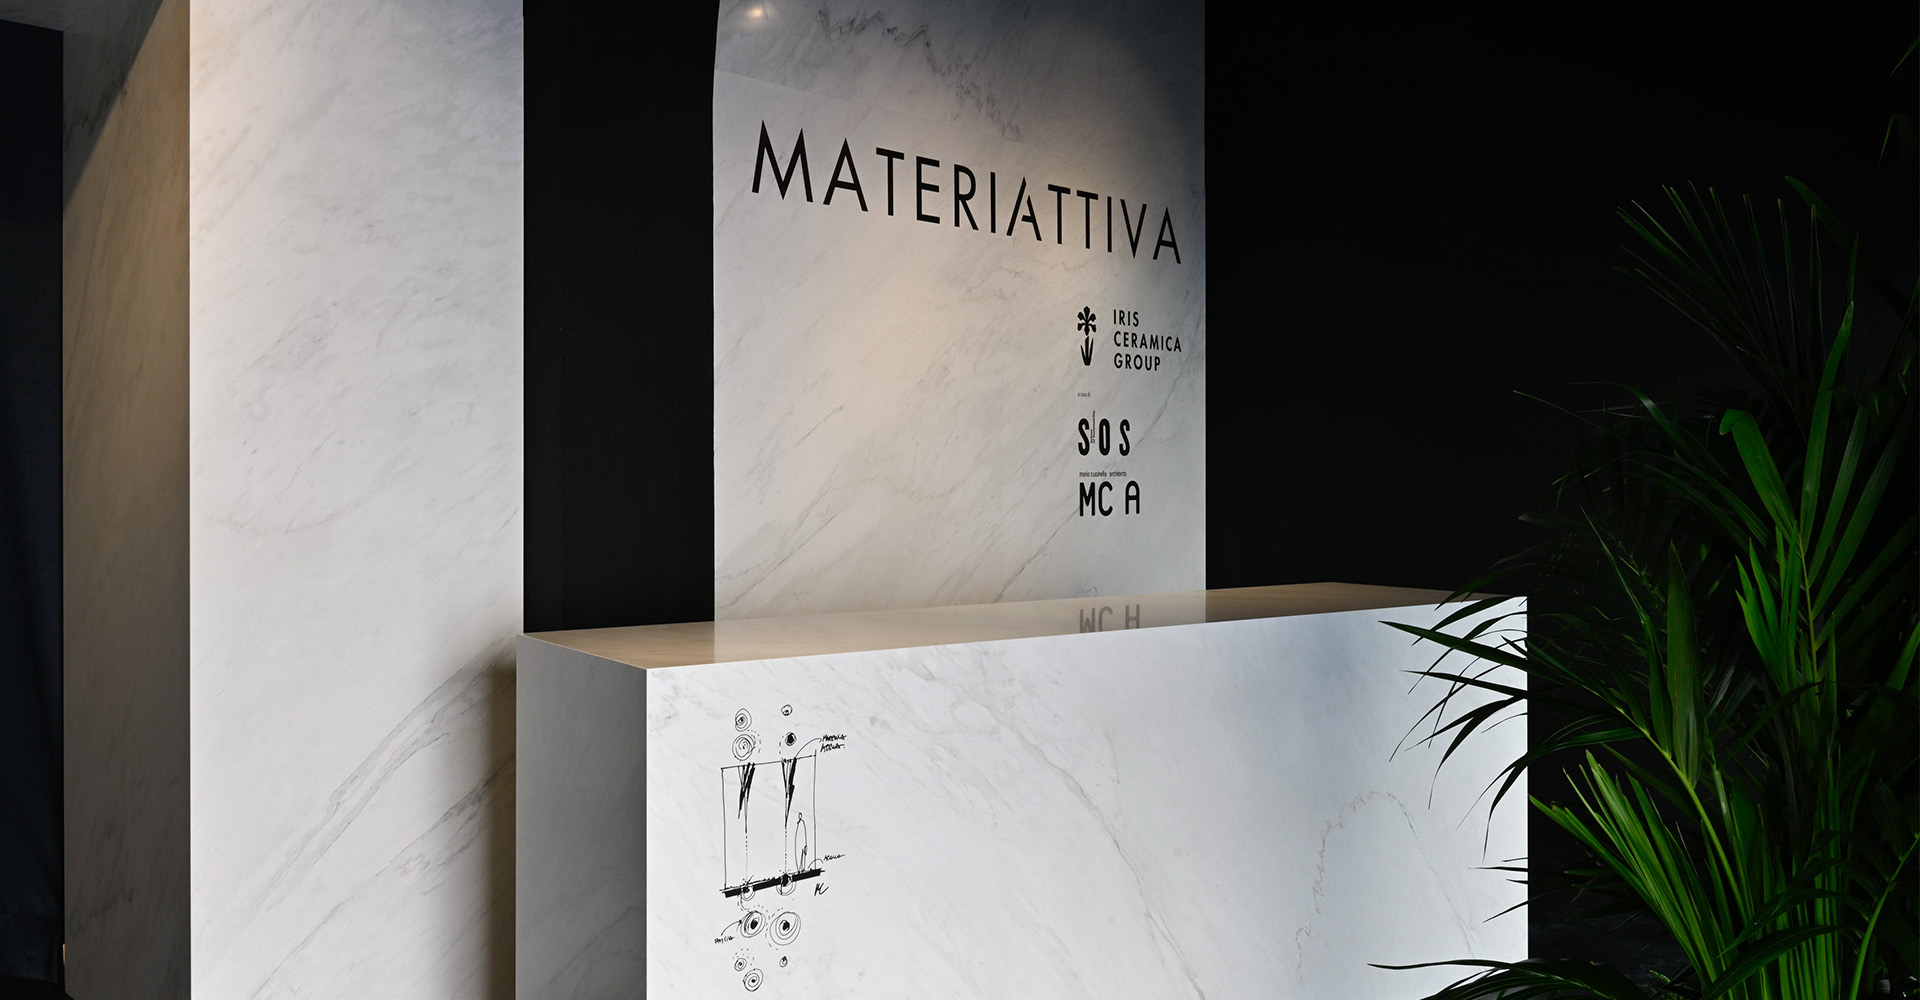 <strong>SapienStone at Fuorisalone 2019 with the Iris Ceramica Group in MateriAttiva</strong><br />